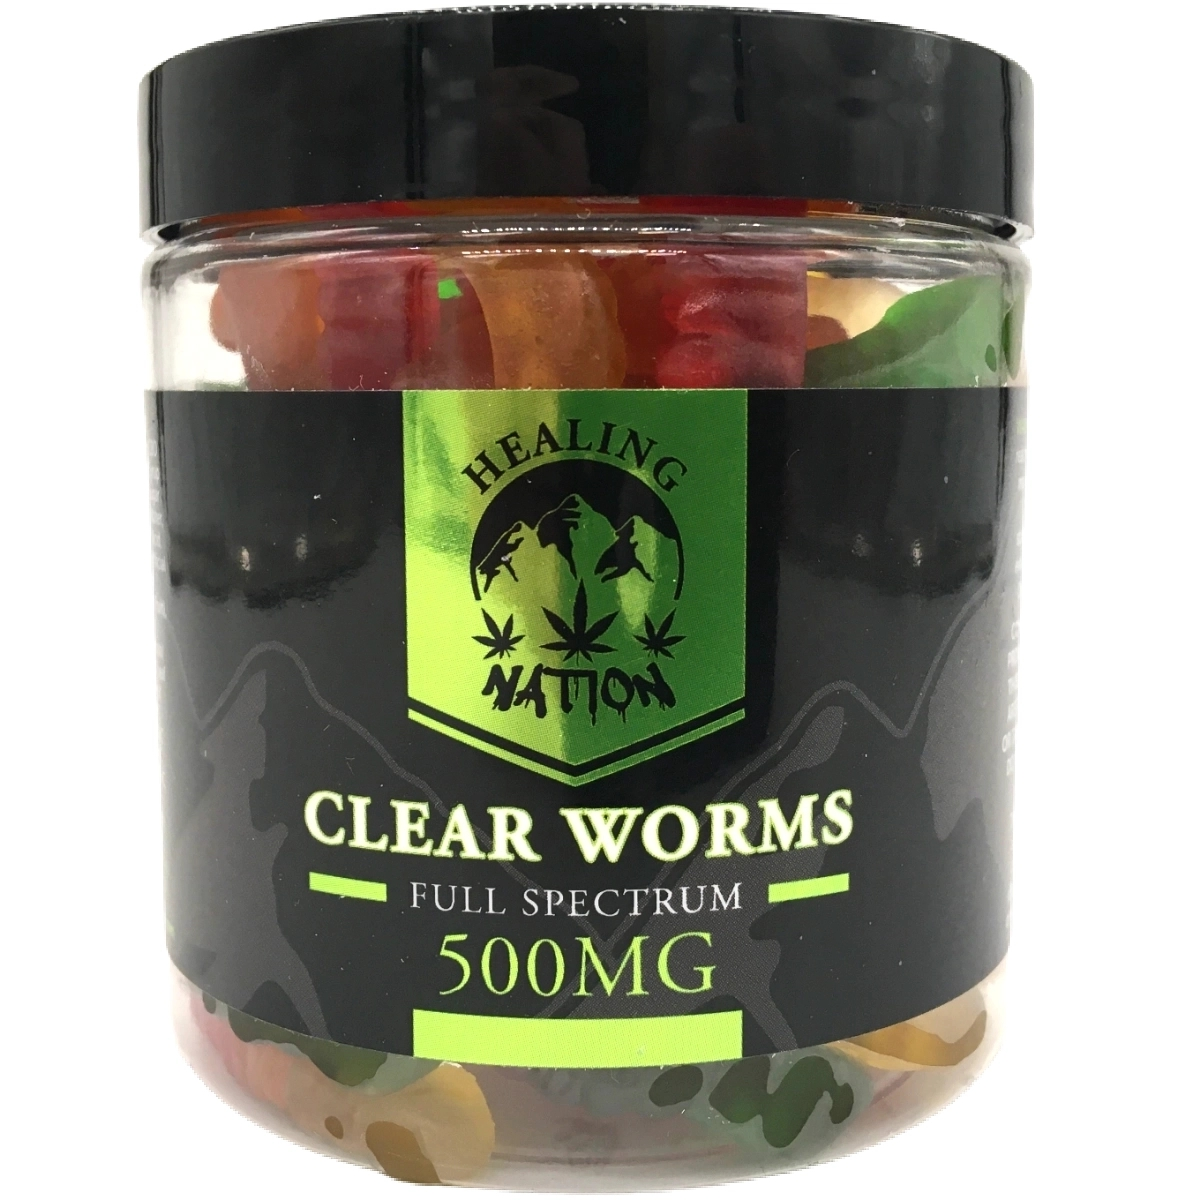 Healing Nation 500mg Gummy Worms